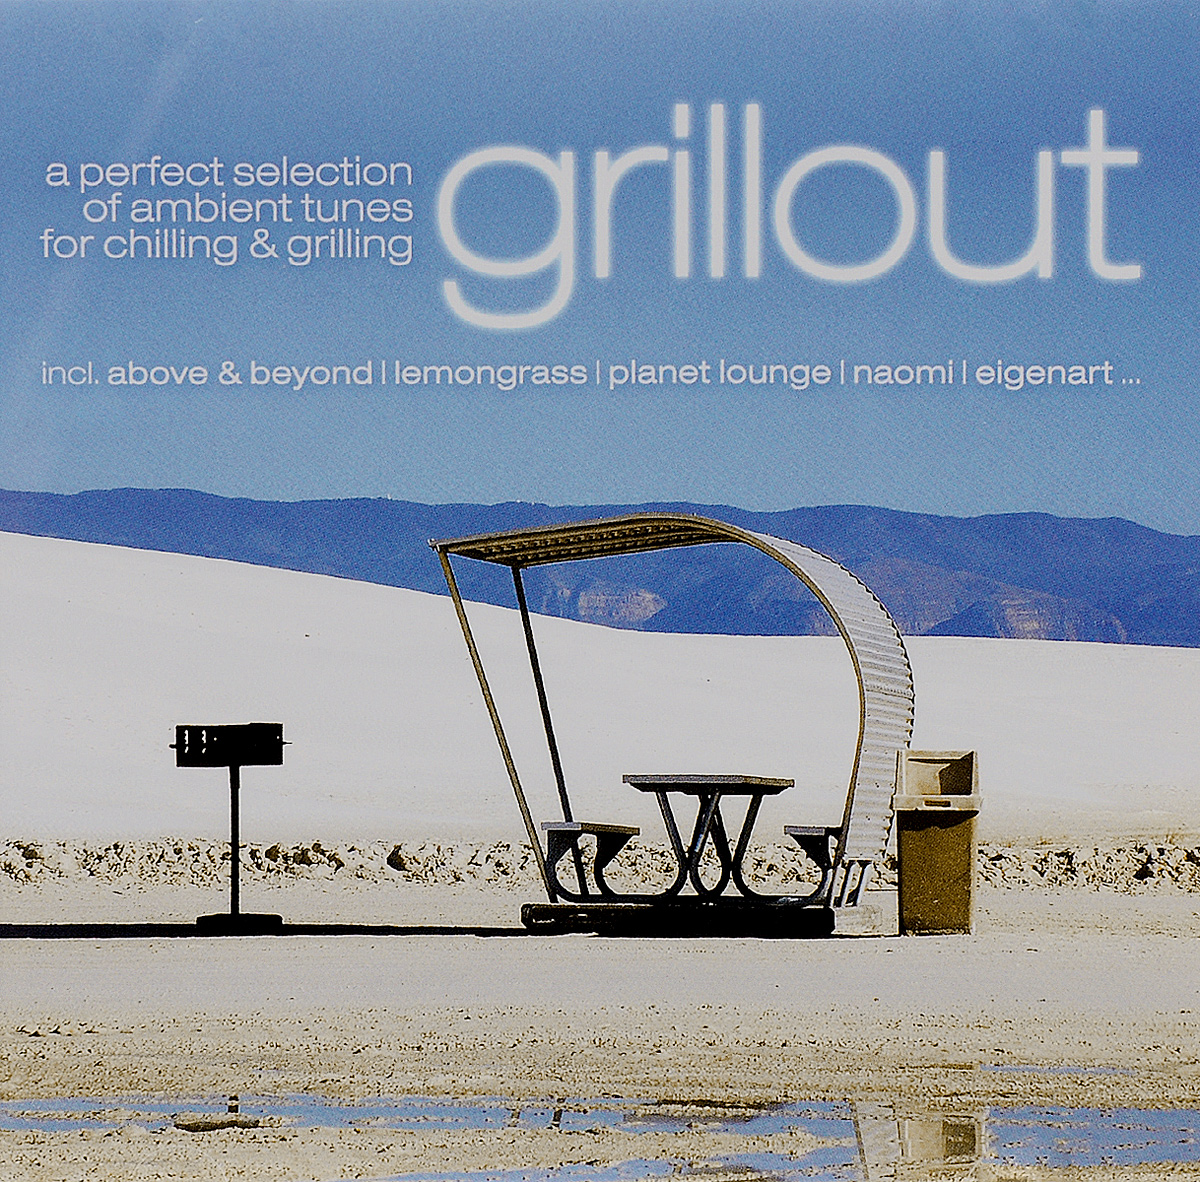 Grillout